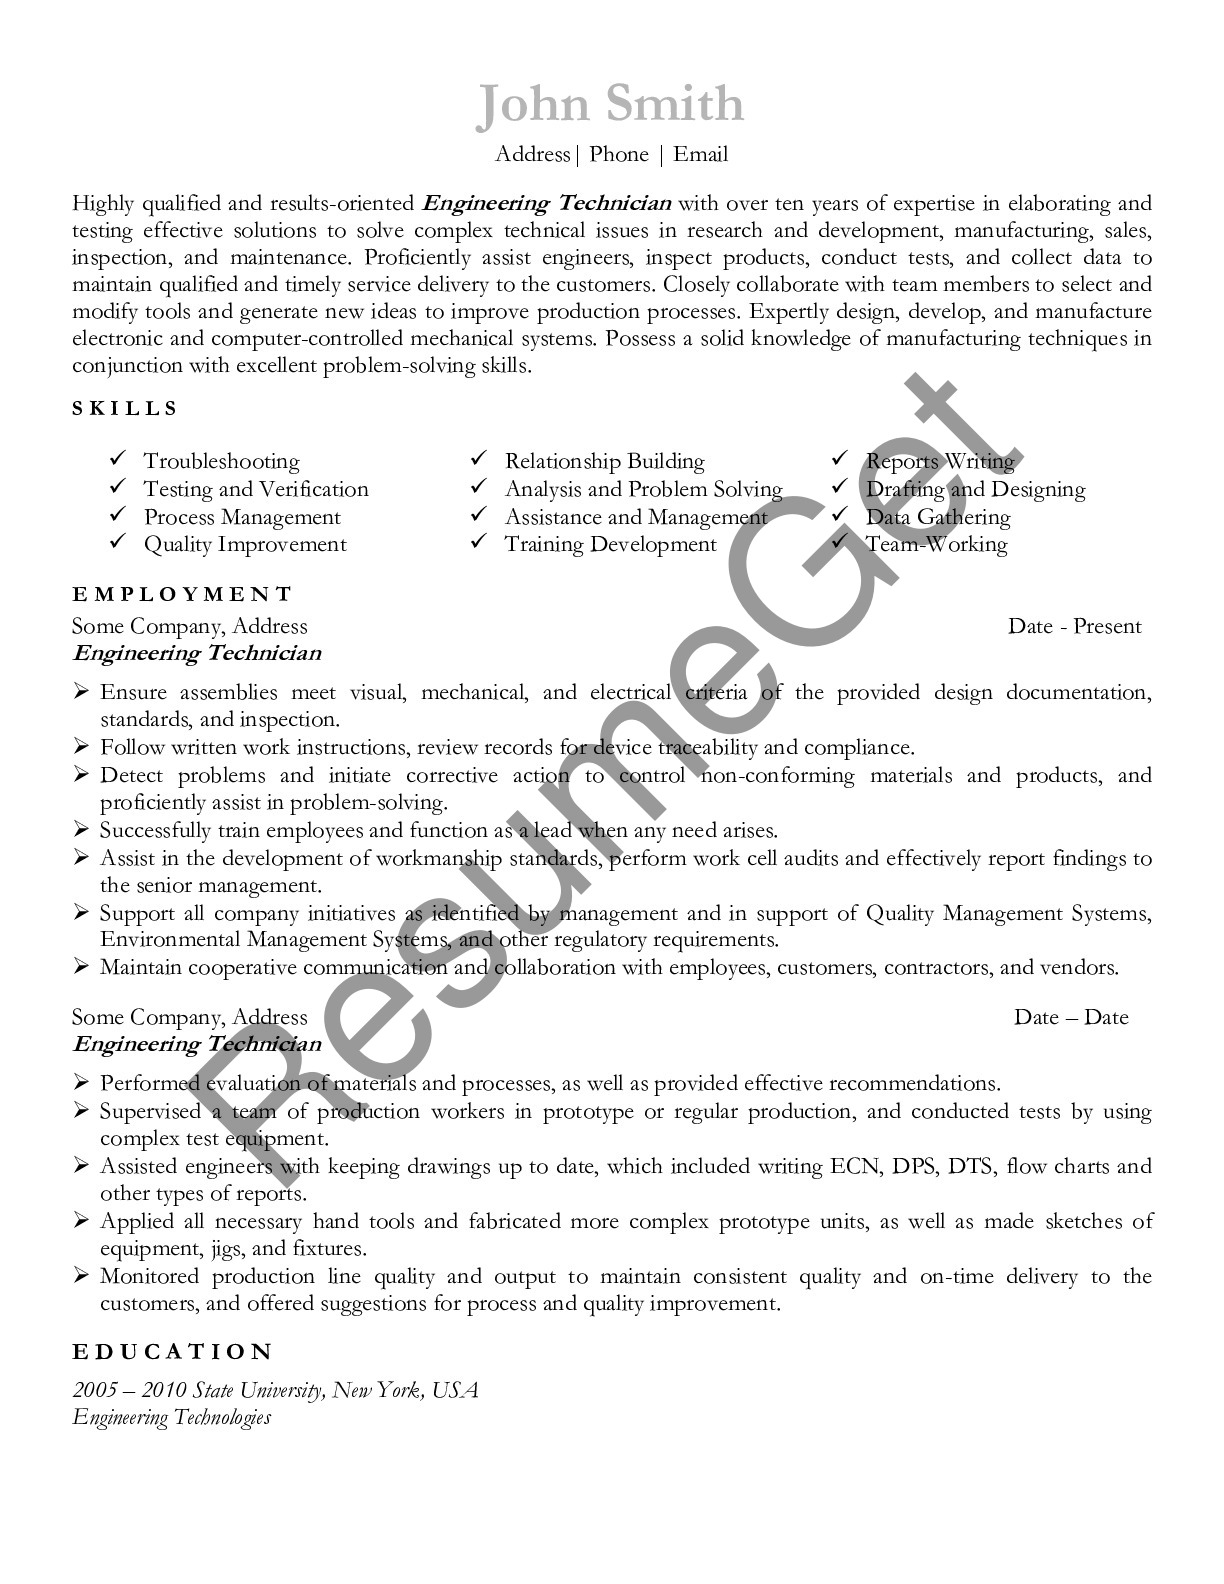 Resume Example for Engineering Technician